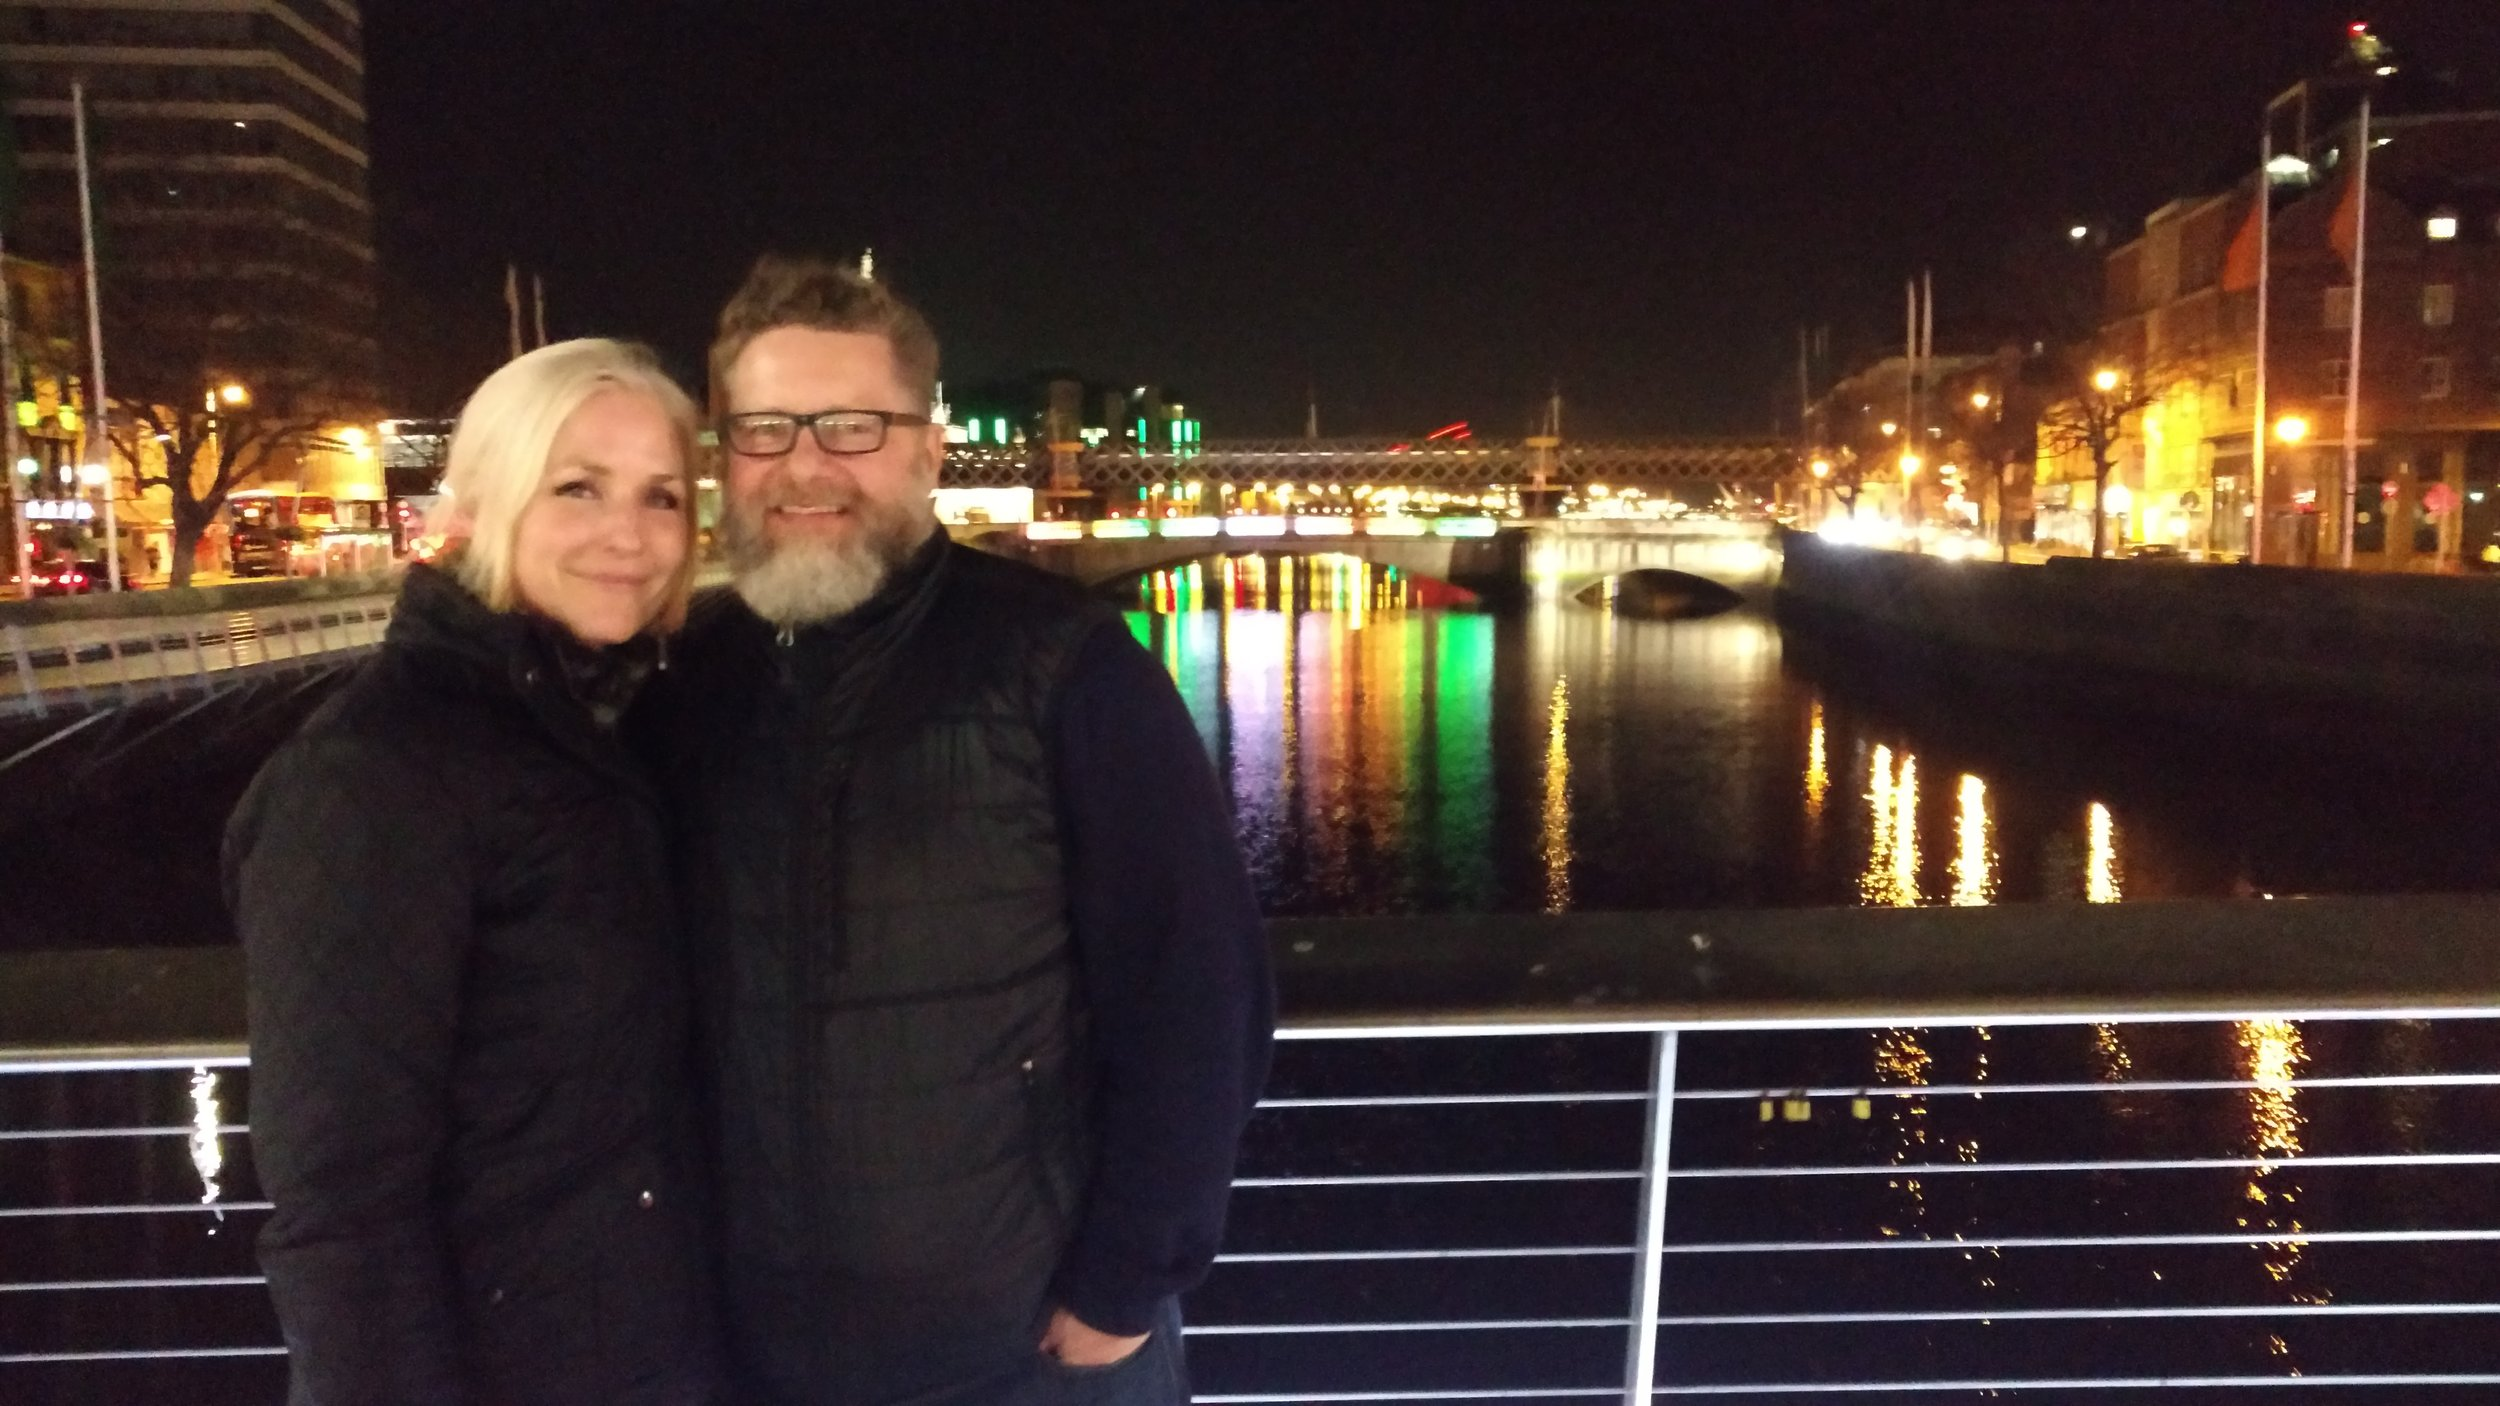 Last night in Ireland, the River Liffey, Dublin